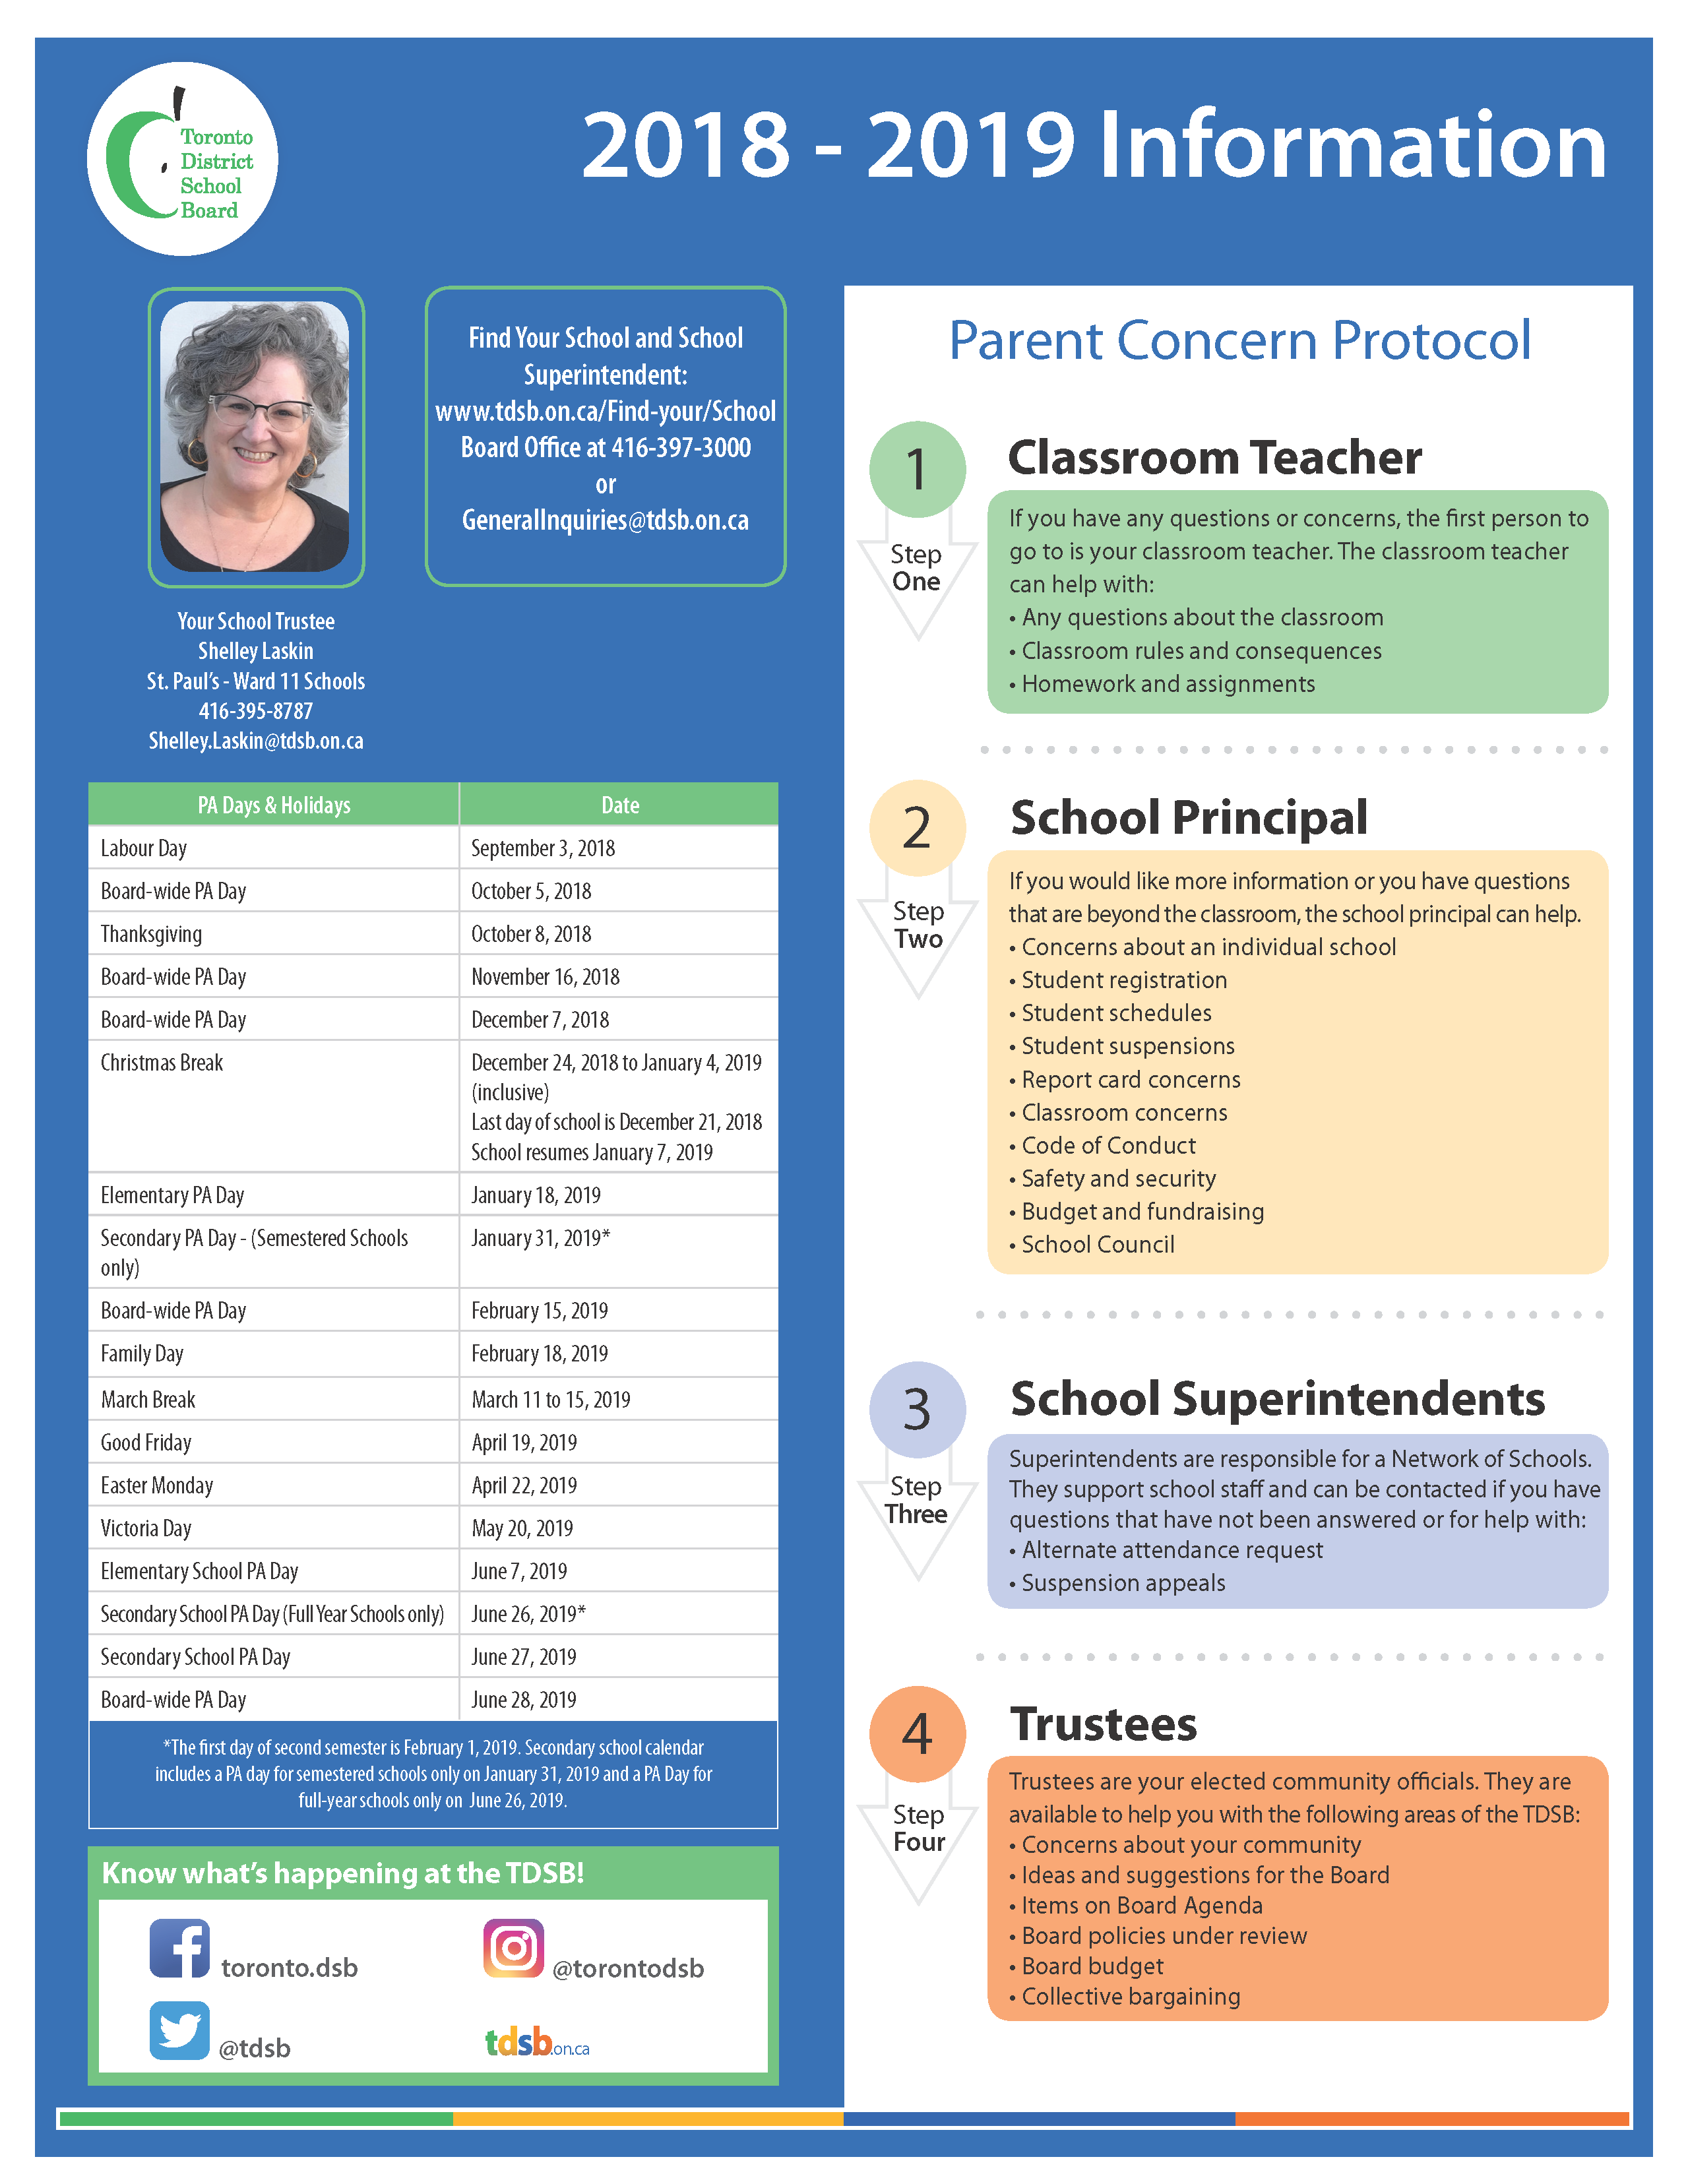 Trustee Laskin Parent Concern Protocol Poster